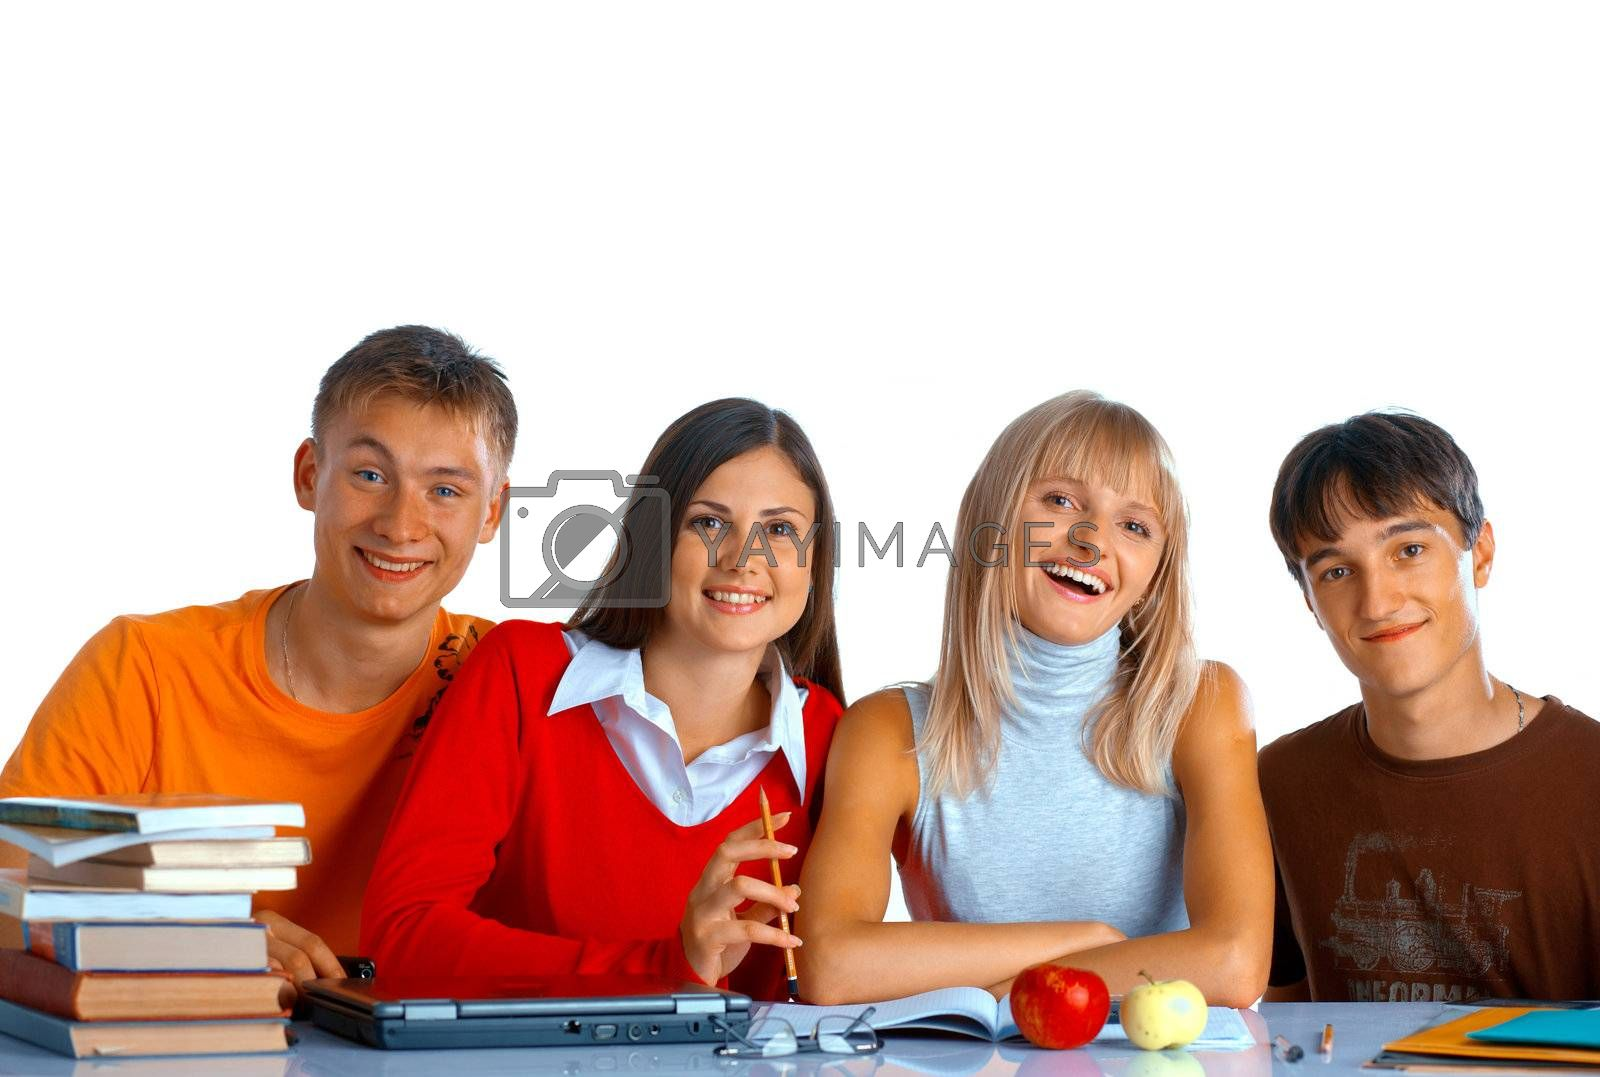 Group of students sit at the desk and smile on white background